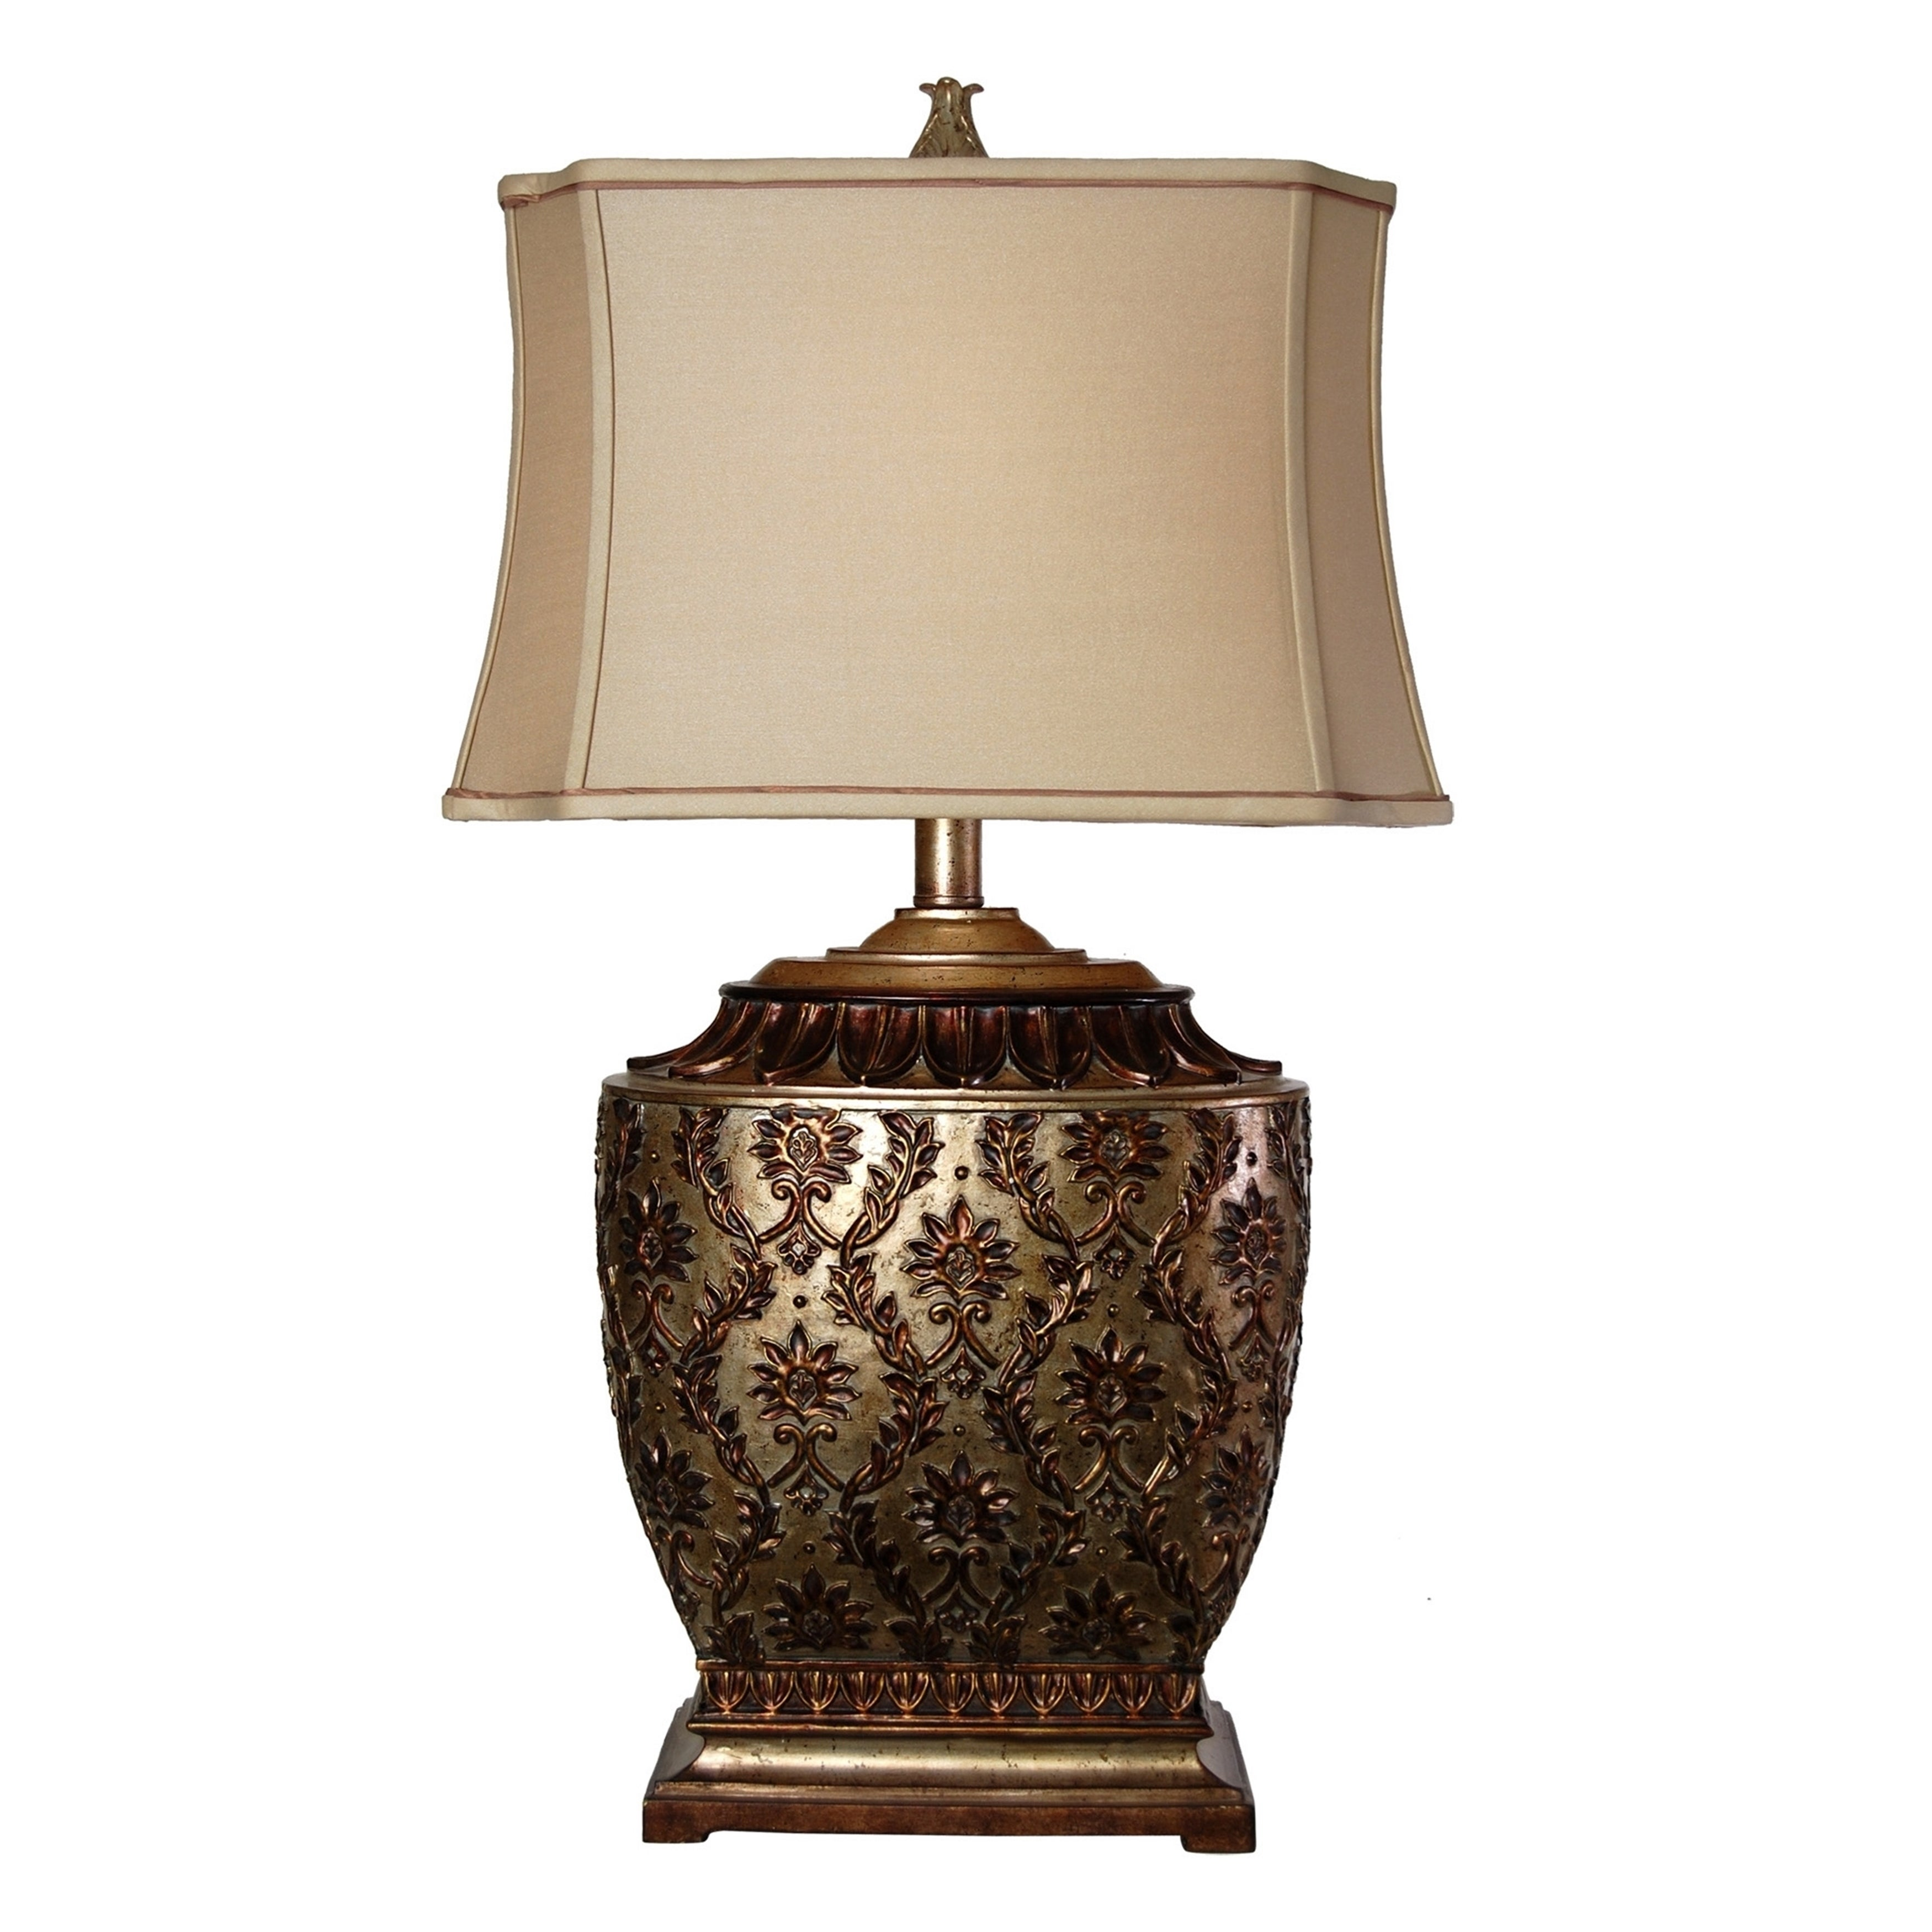 Jane seymour antique platinum barbados table lamp beige fabric shade